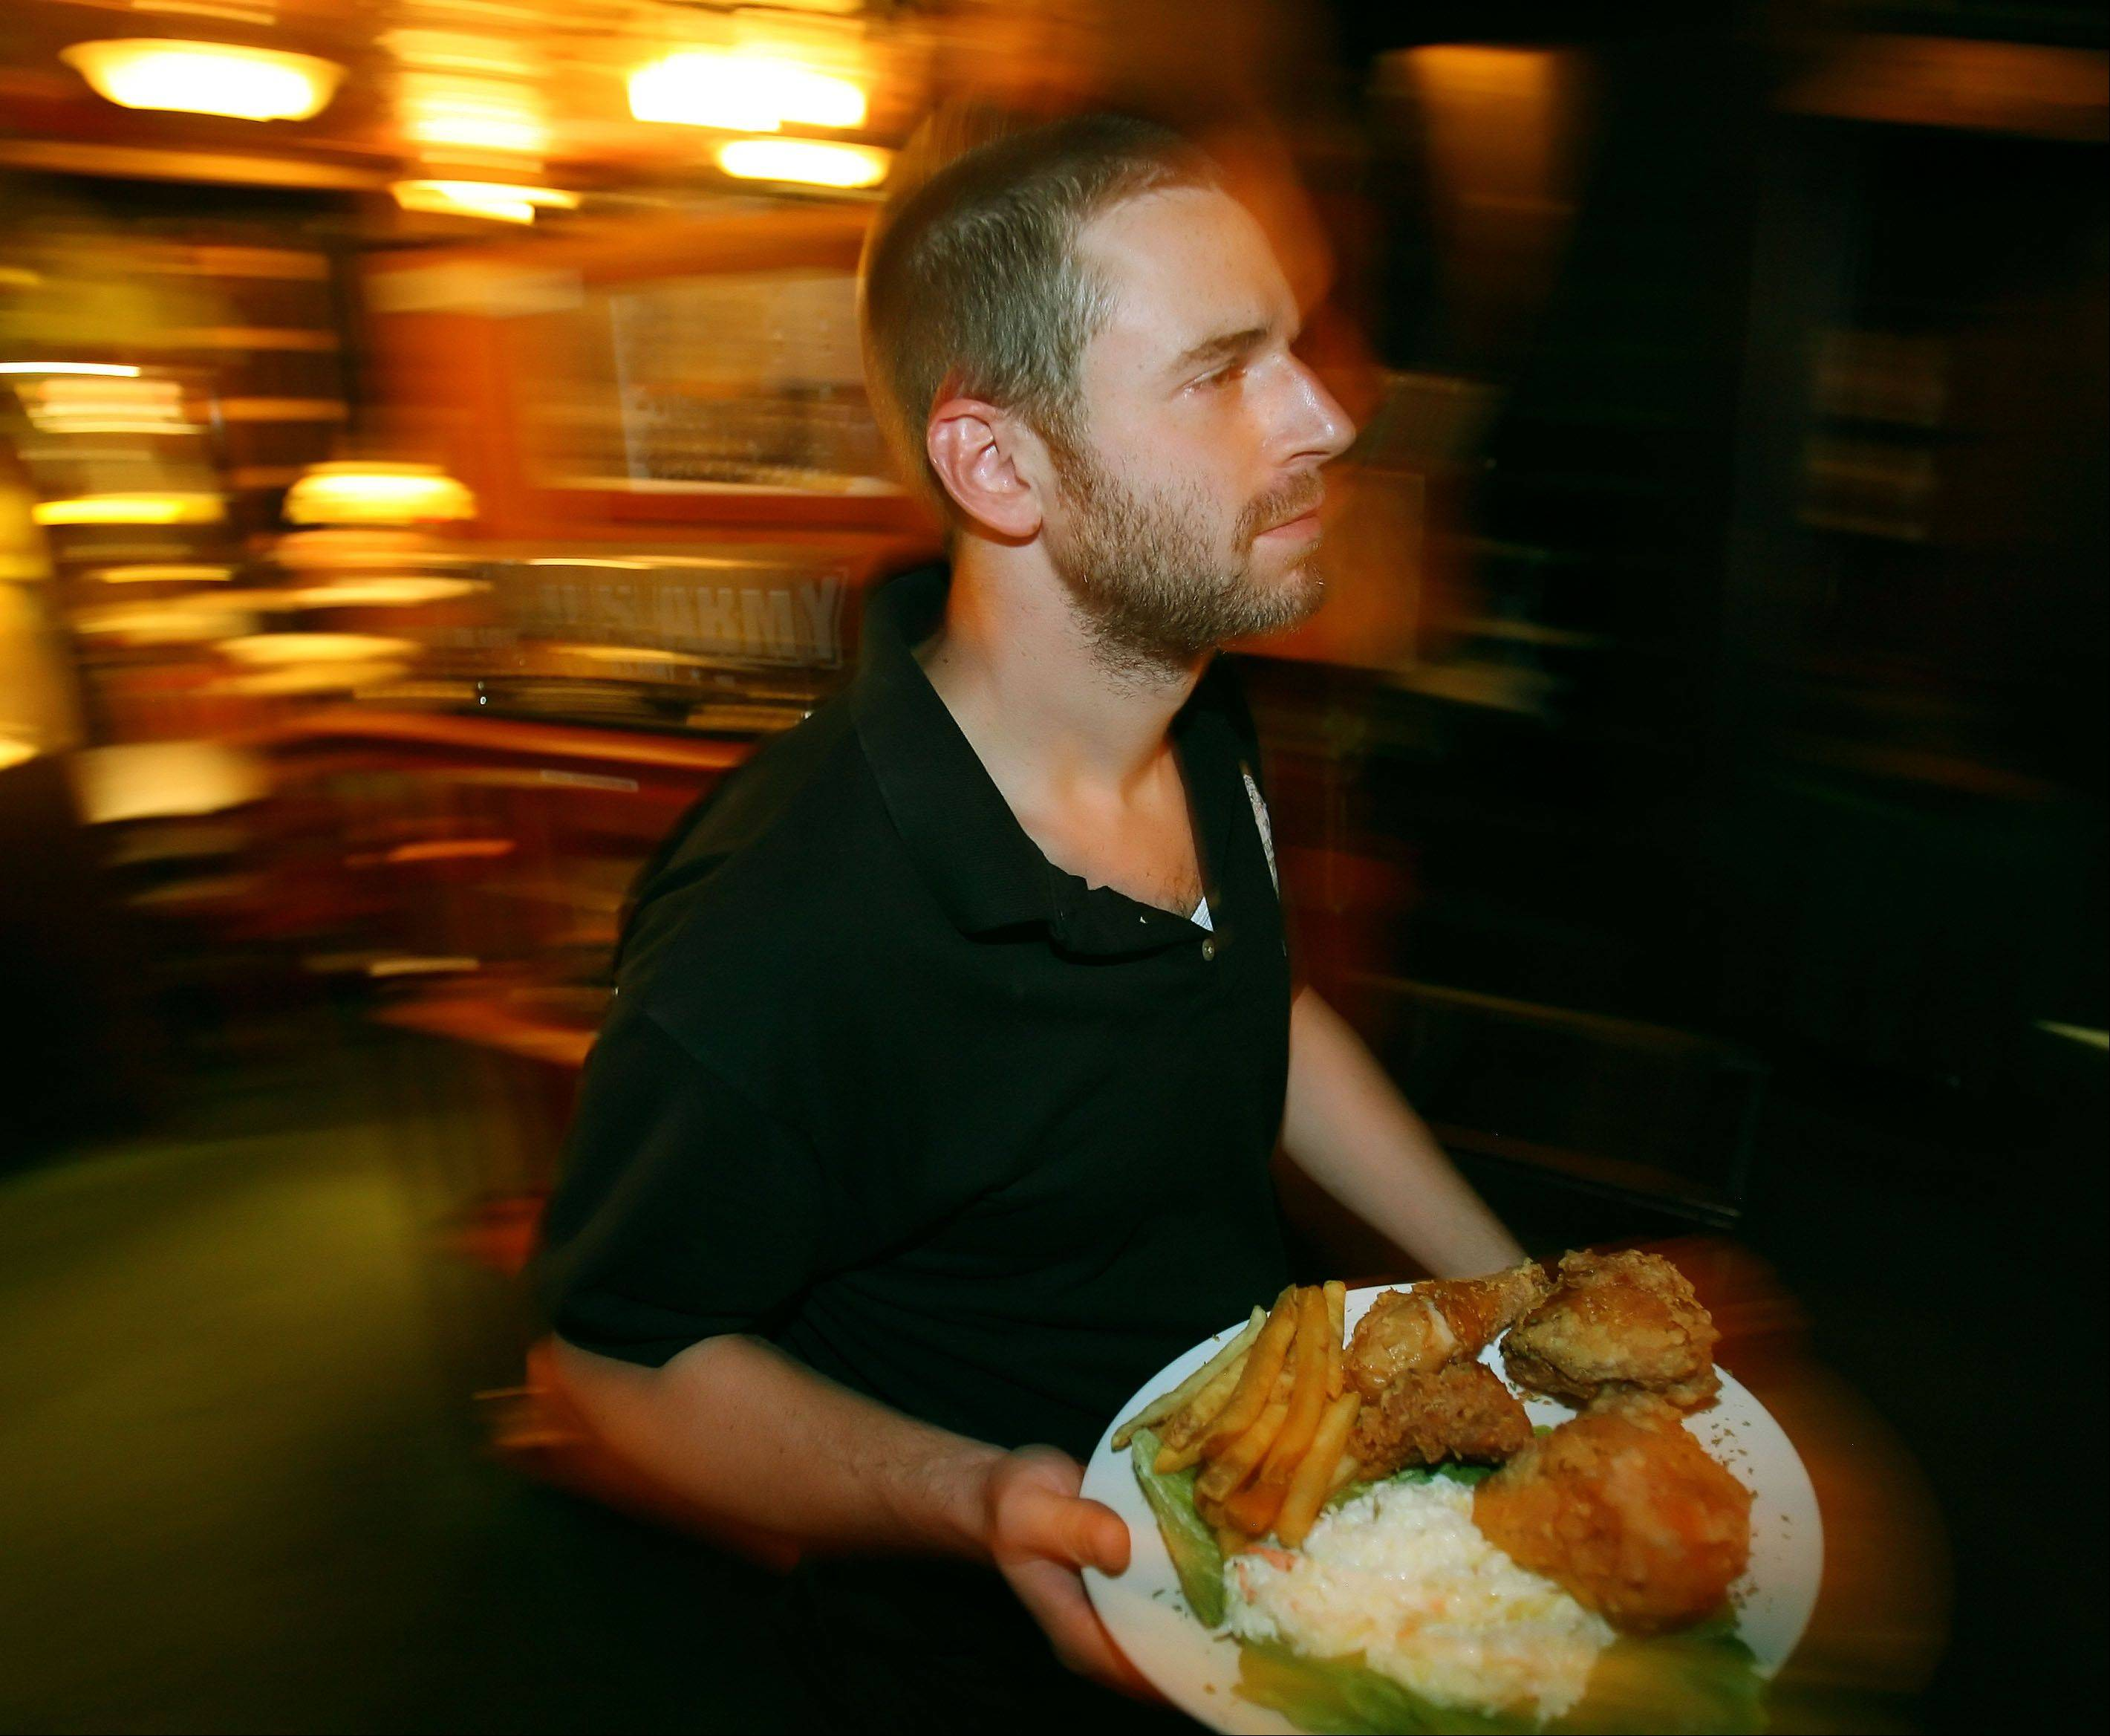 Waiter Mitch Rafalowitz serves up a broasted chicken dinner at The Village Tavern in Long Grove.